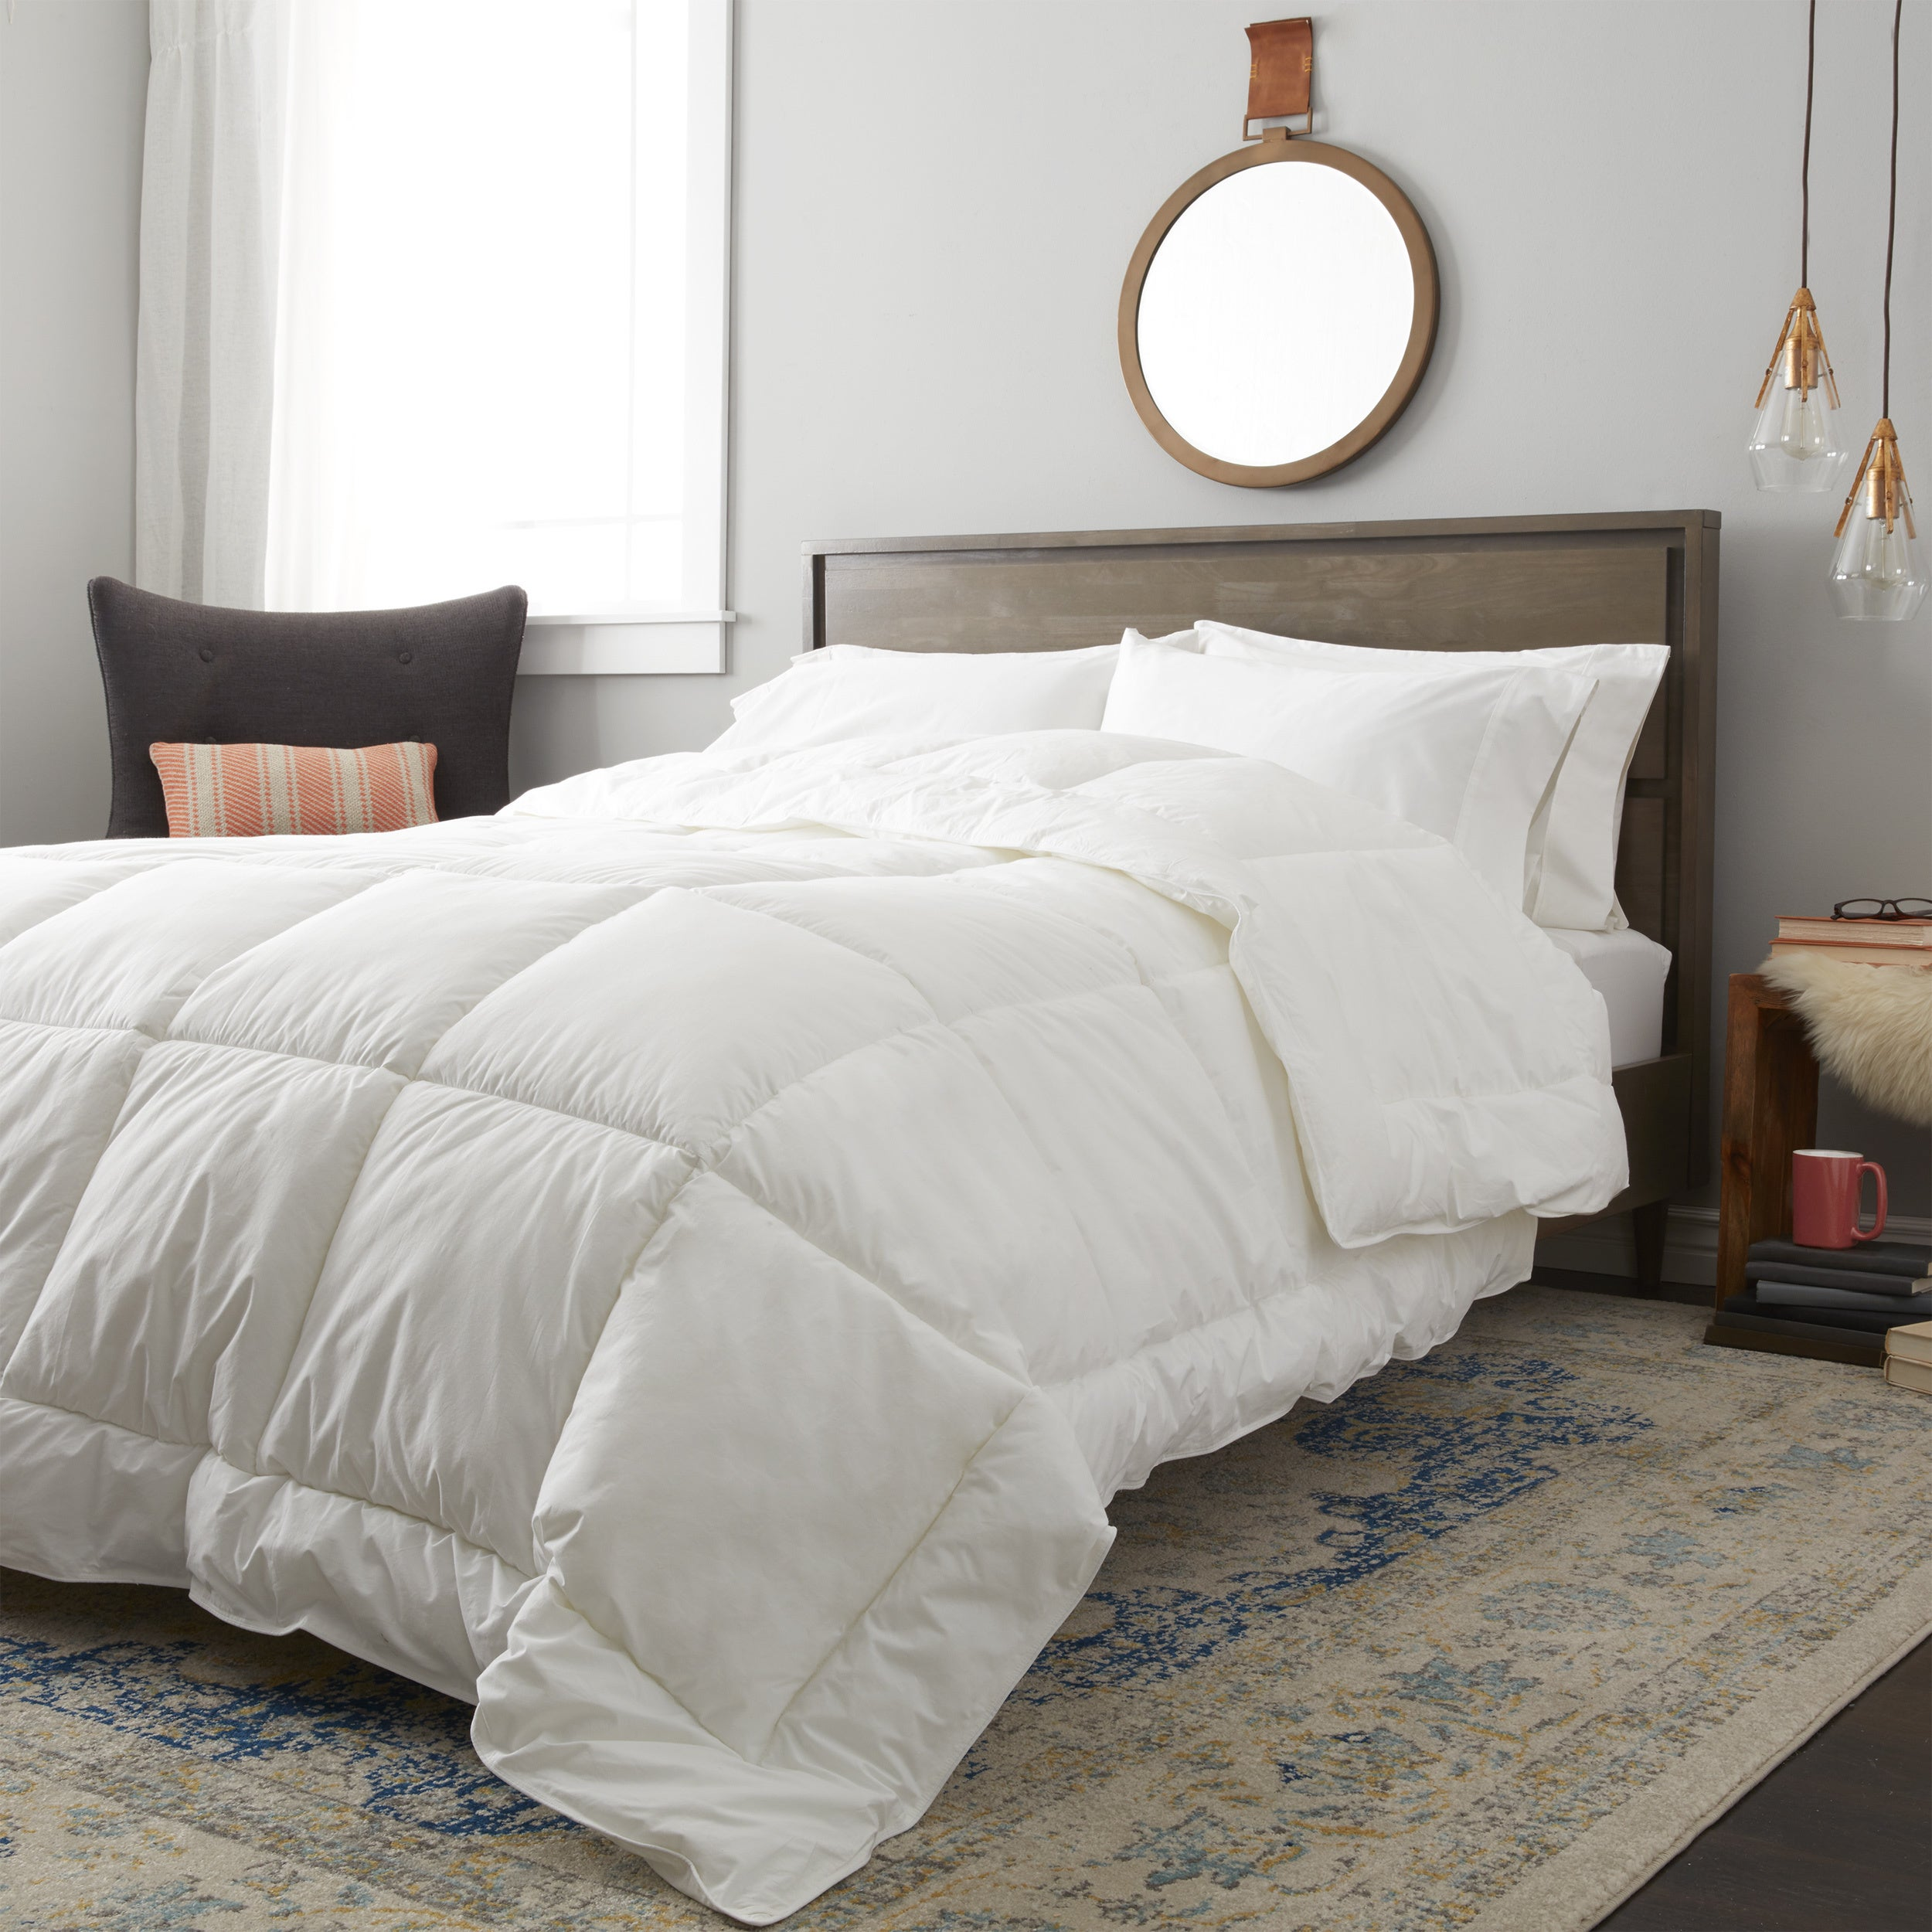 bath down set product today queen madison comforter mini bedding shipping overstock fur free alternative polar park